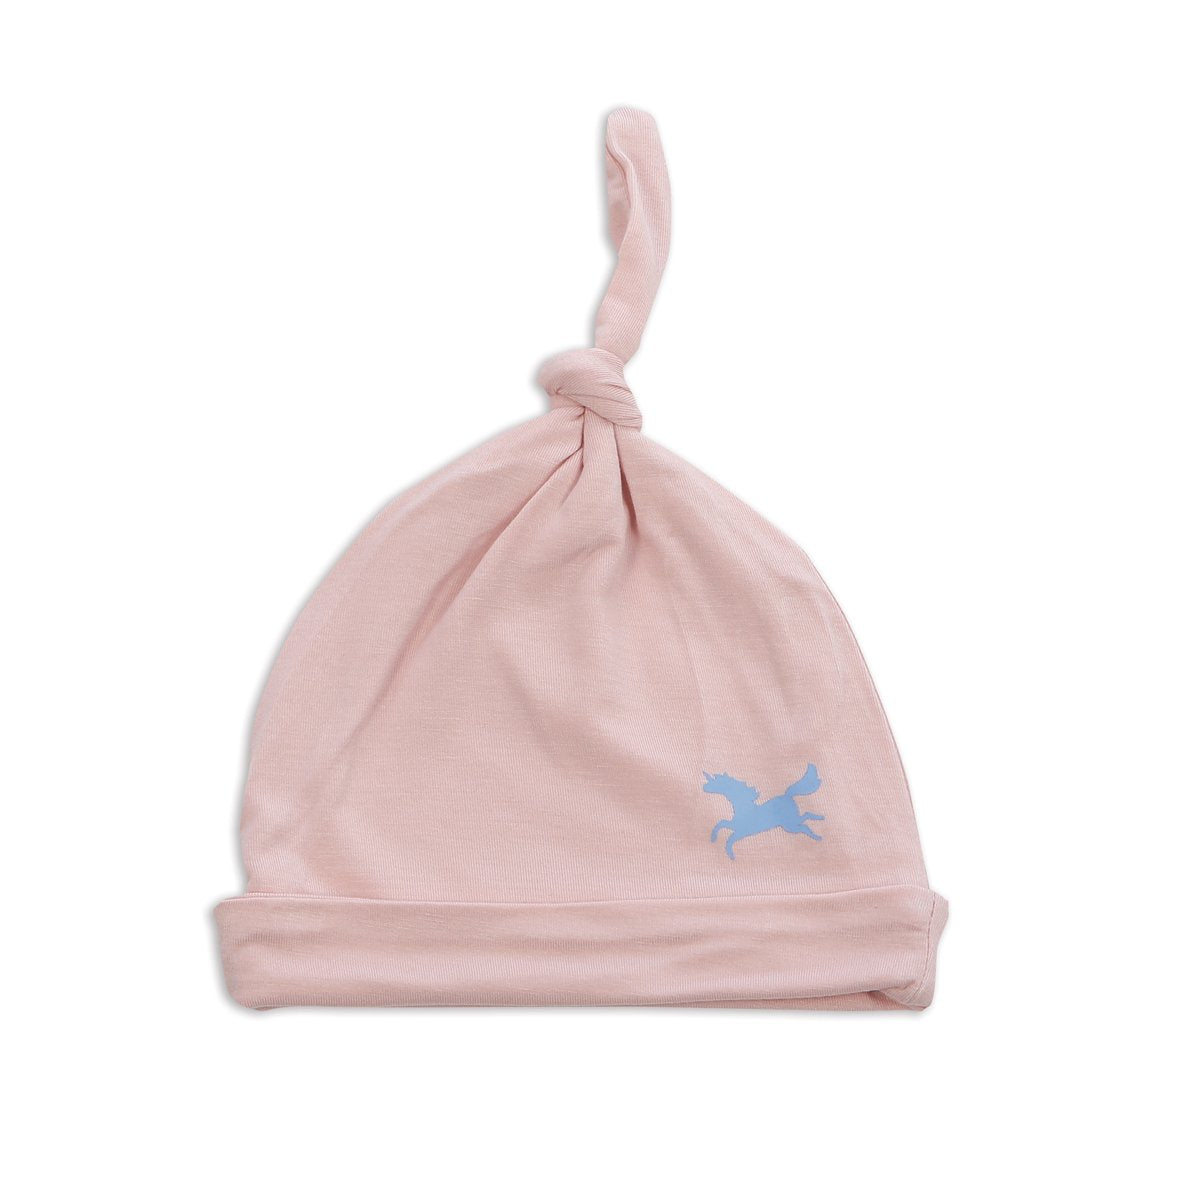 Silkberry Baby Bamboo Knot Hat for 0-6 months